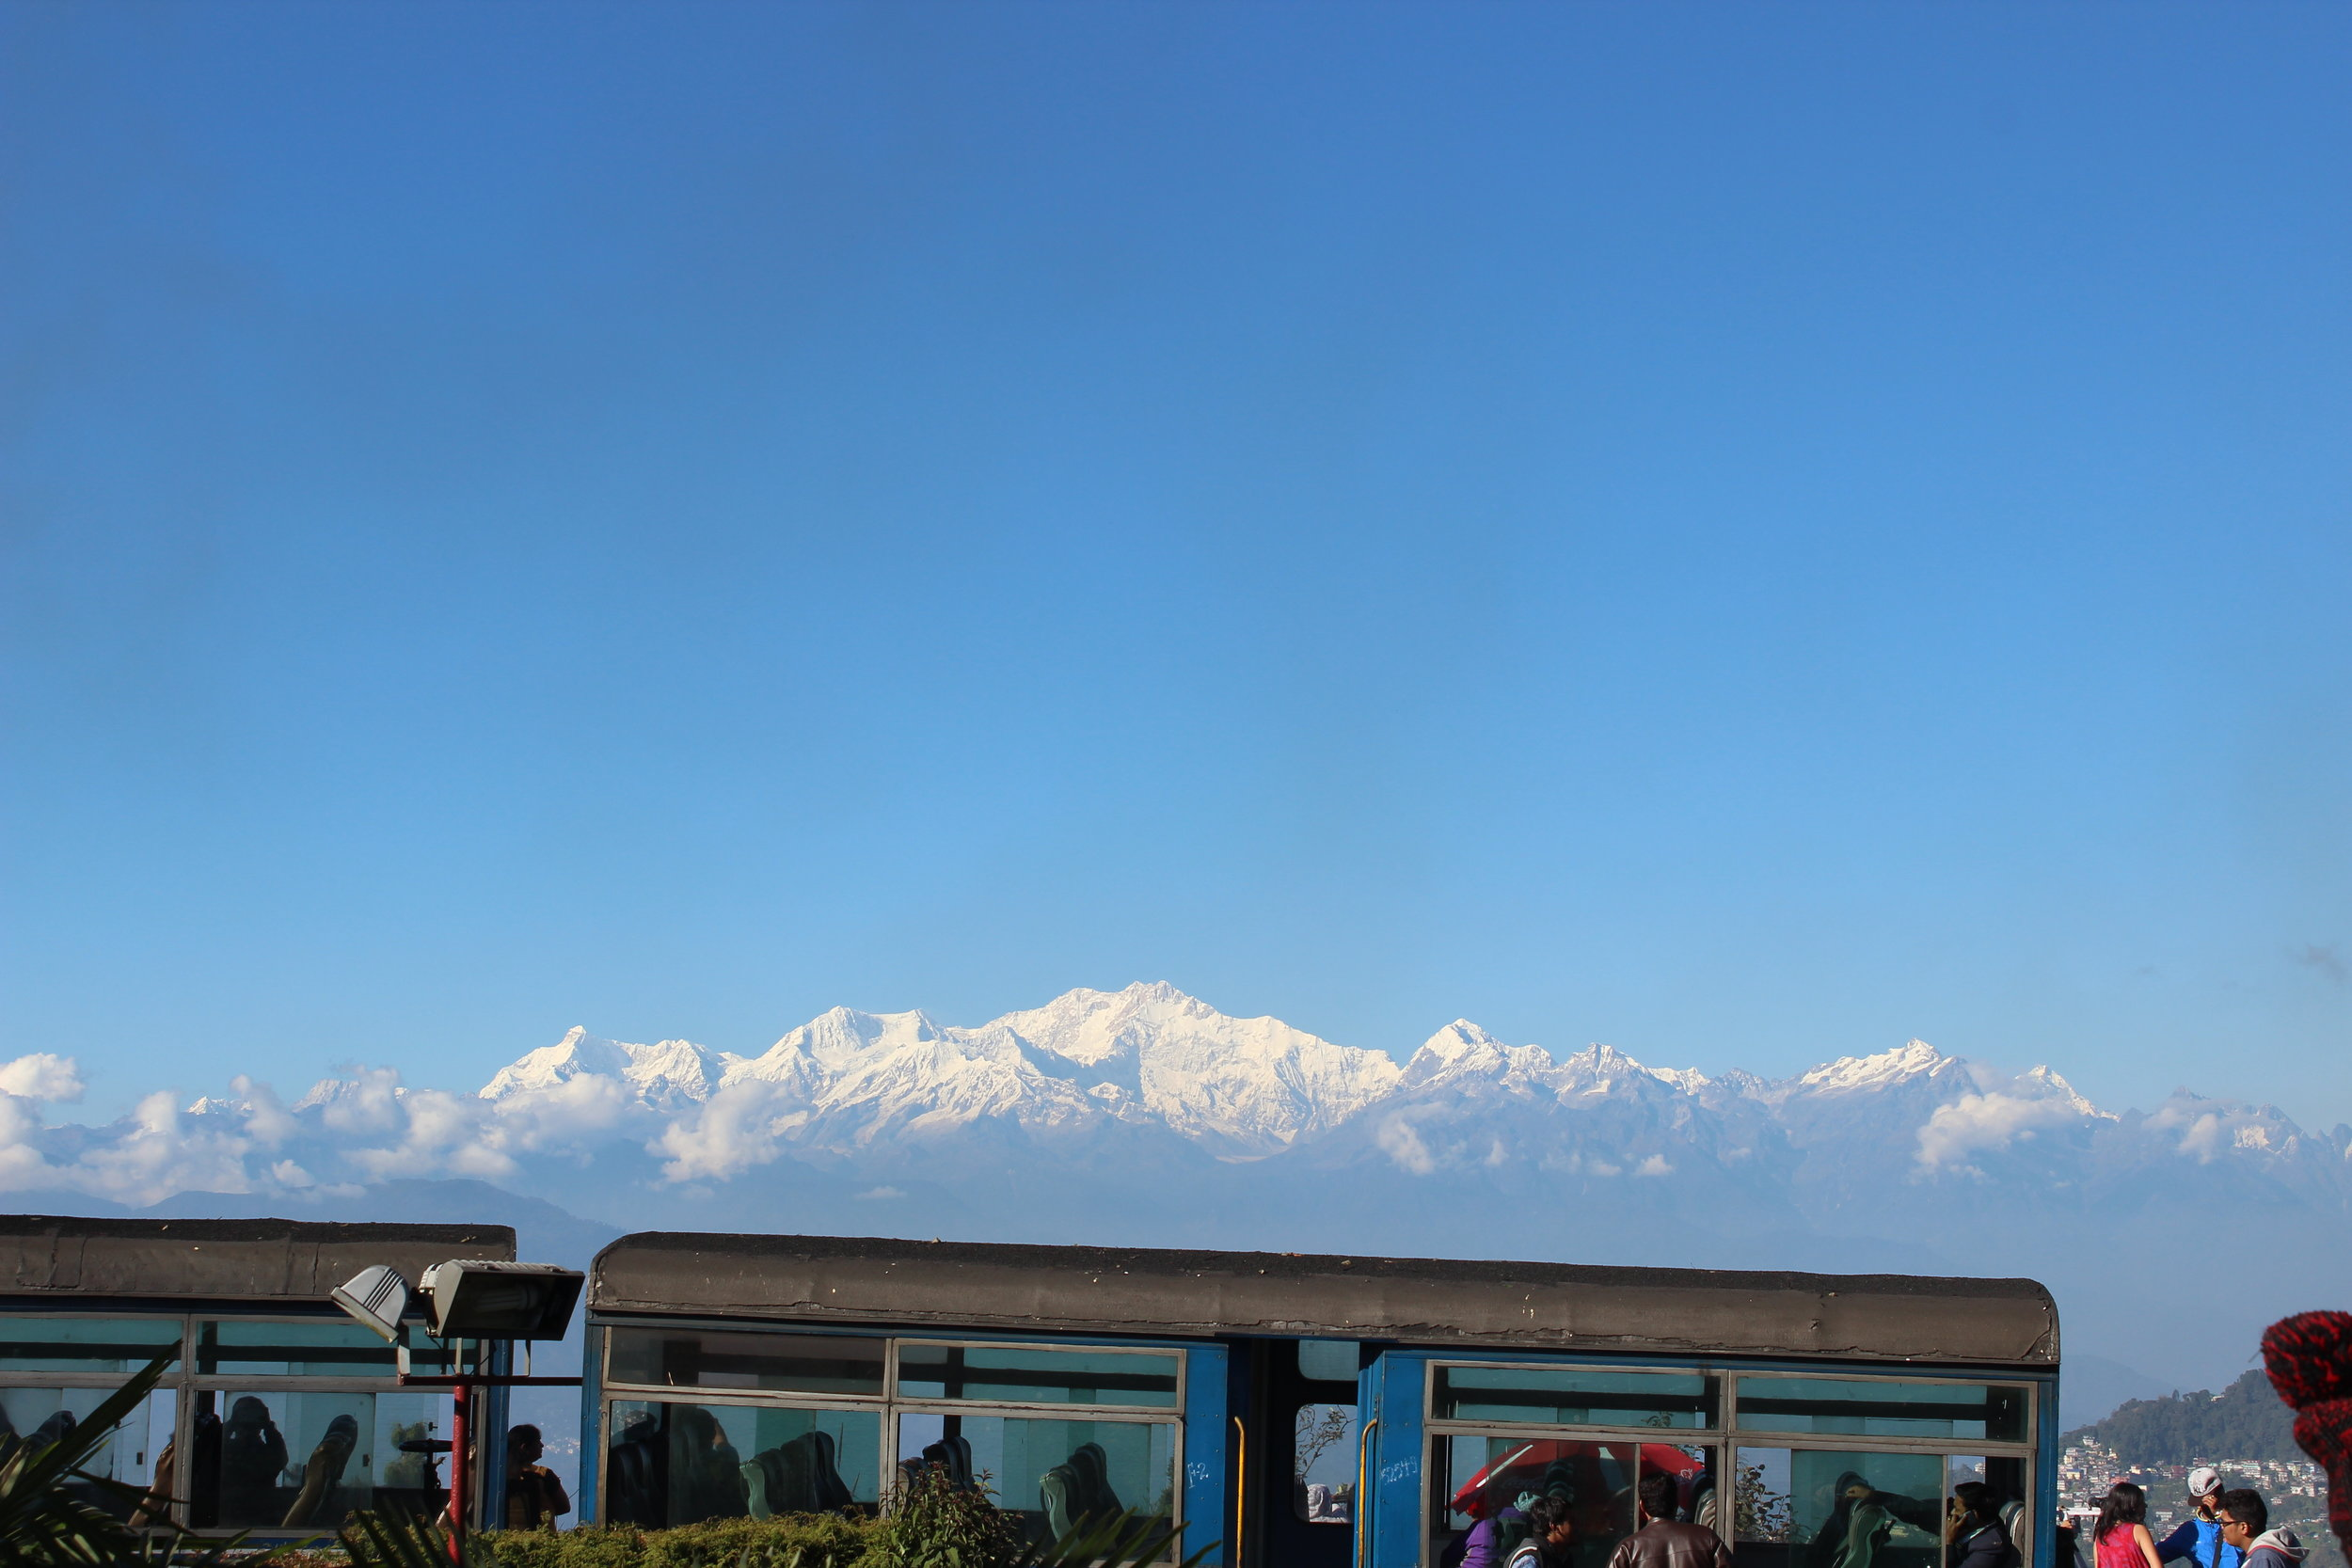 The view from the Darjeeling Himalayan Railway